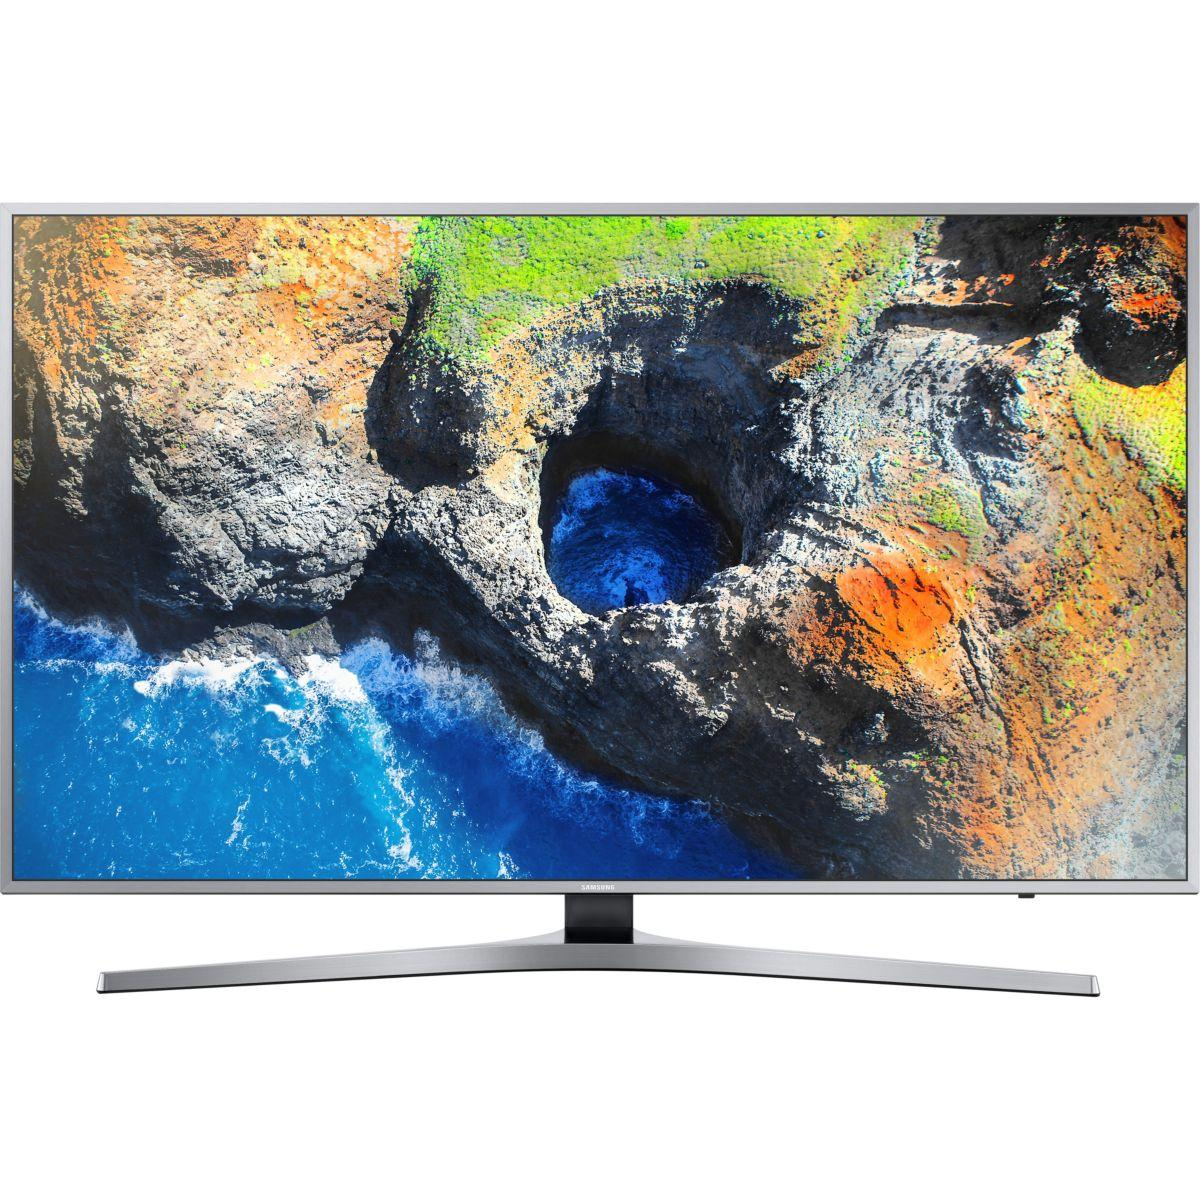 Tv samsung ue49mu6405 4k hdr smart cryst (photo)